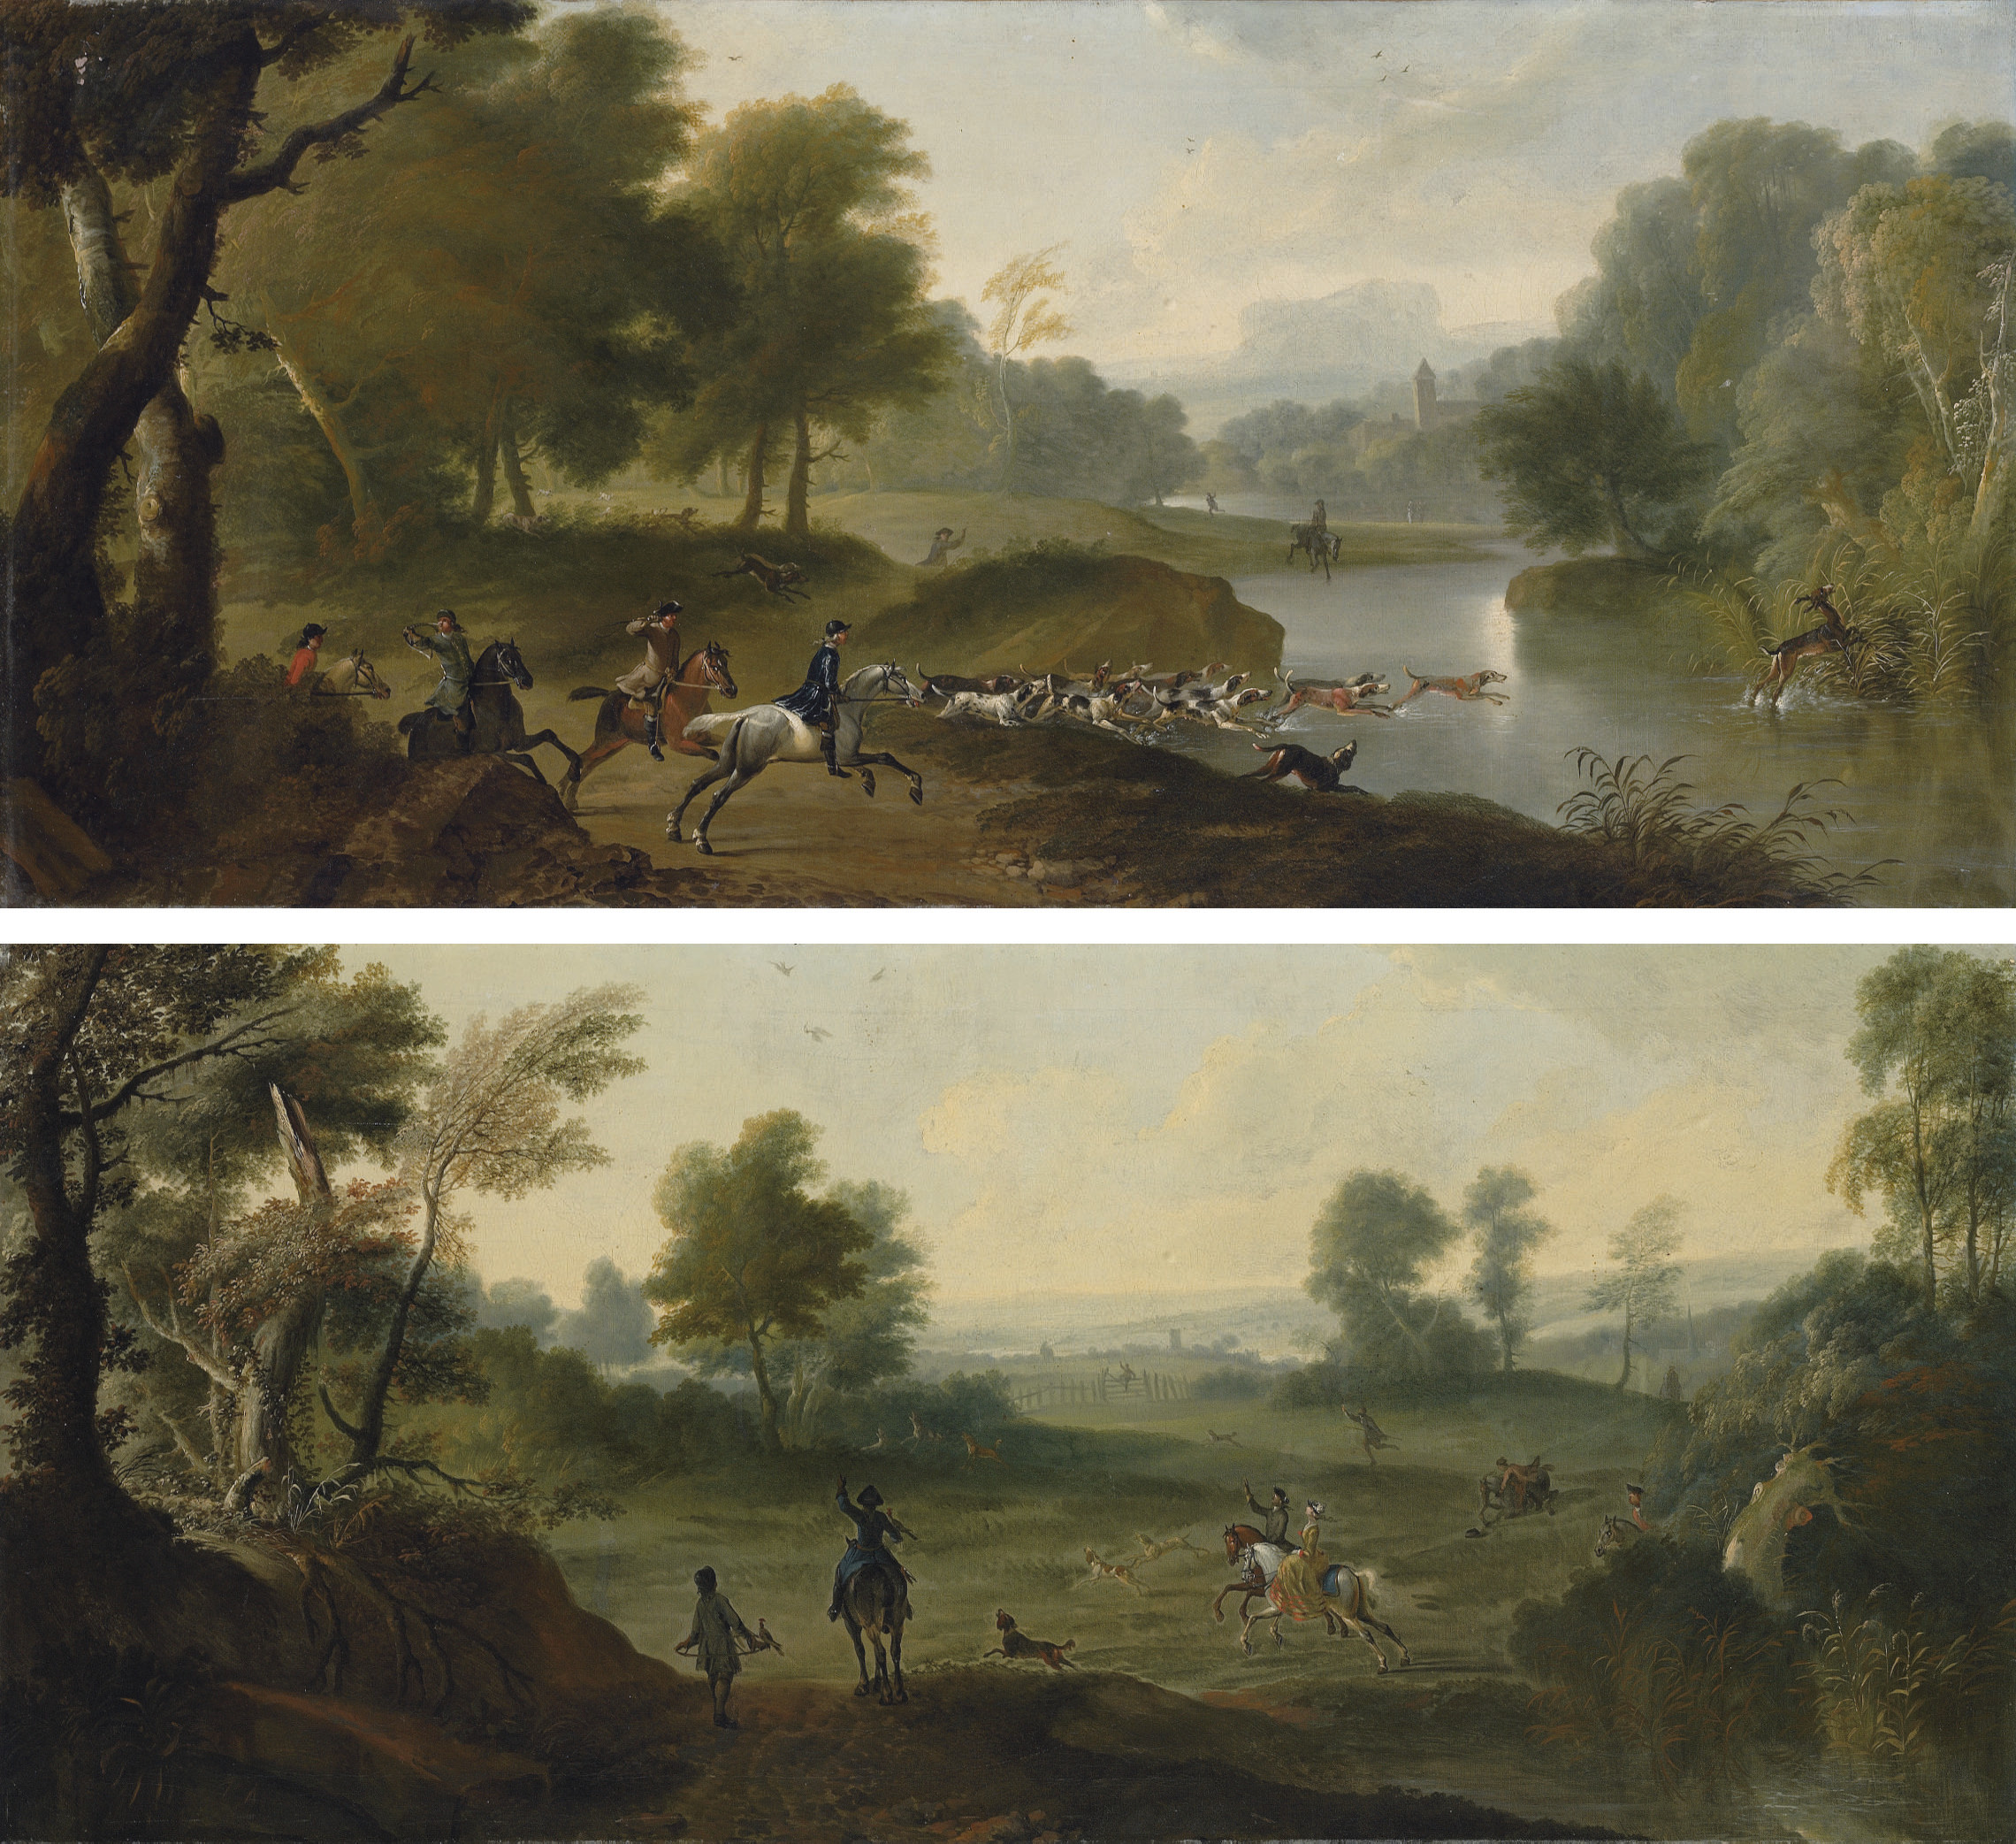 A stag hunt in a wooded river landscape; A hawking party in a landscape